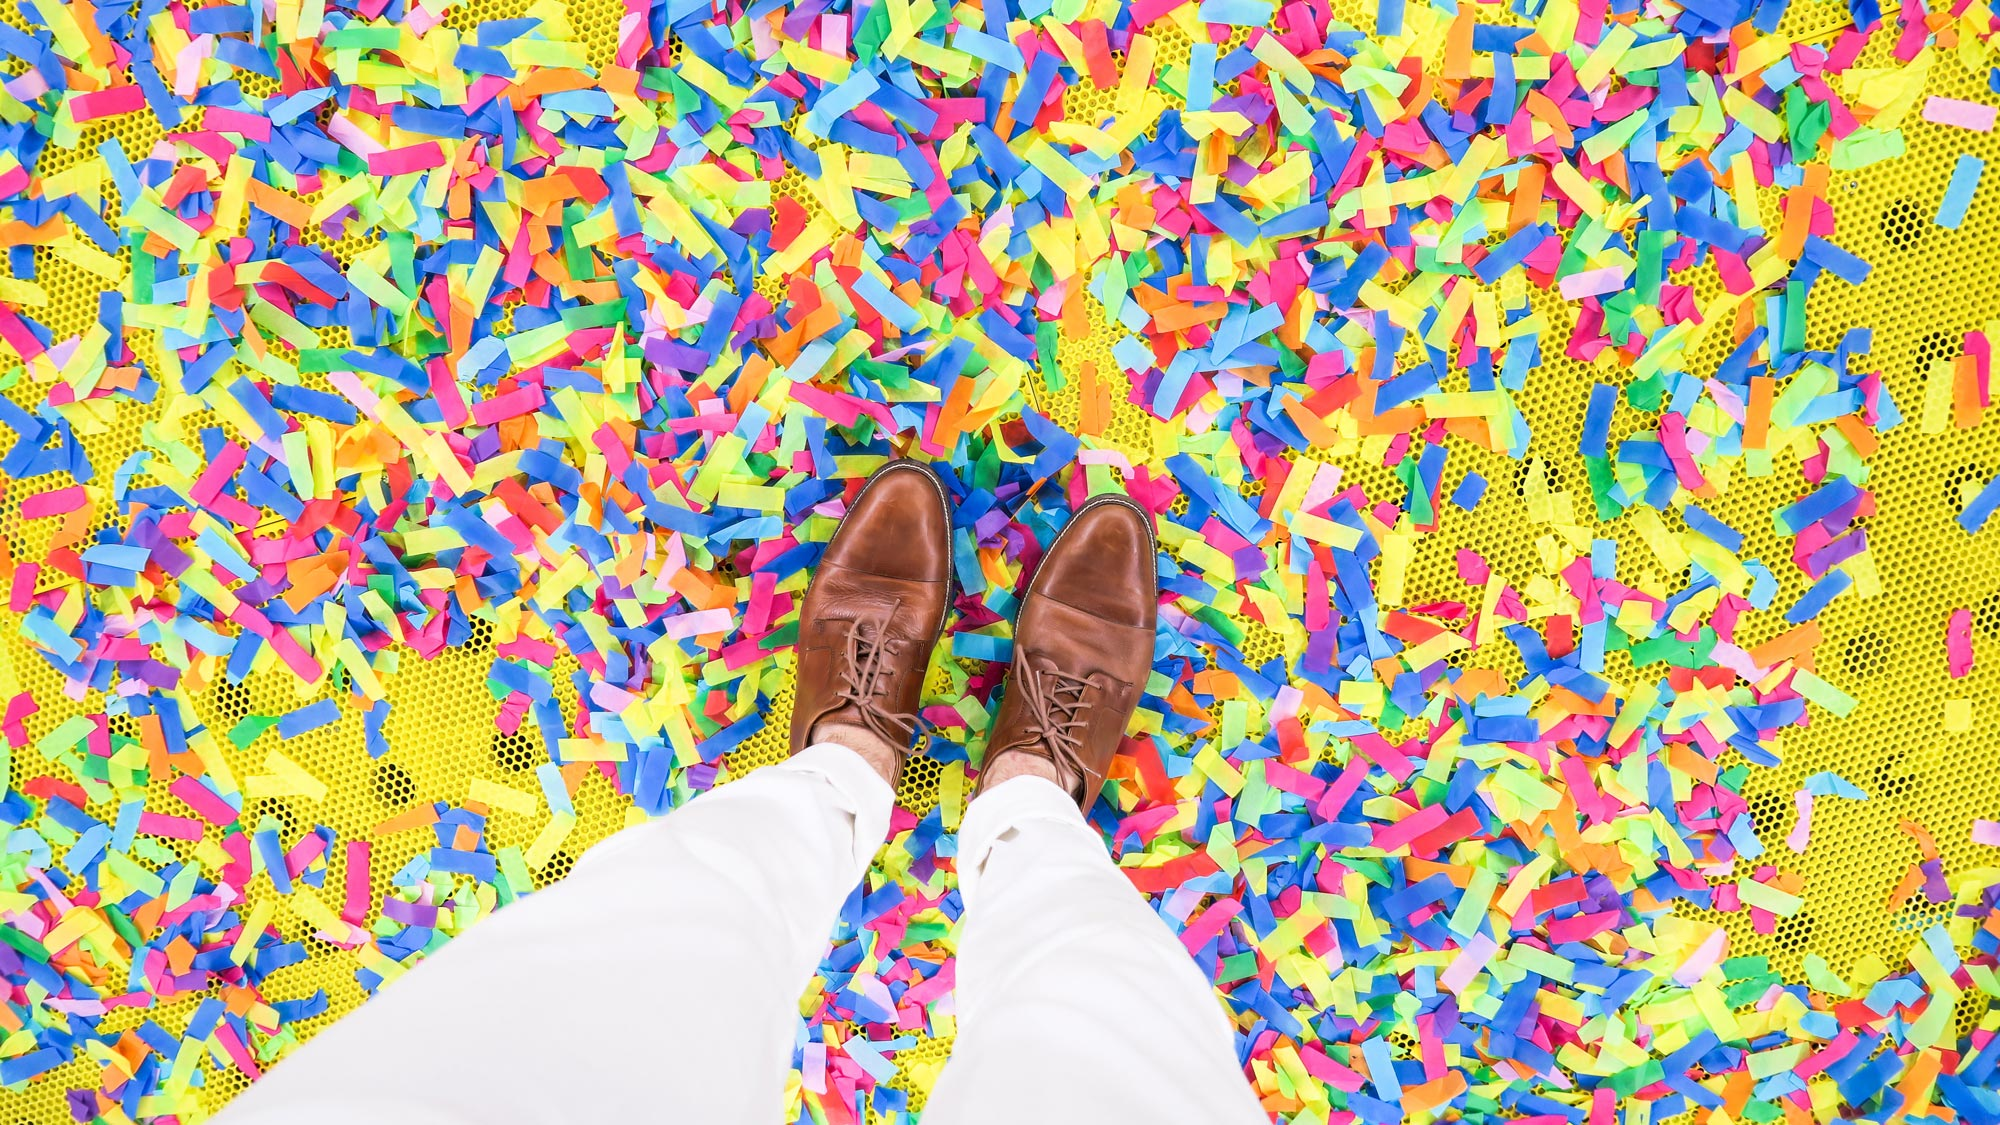 Looking down at white pants covered legs and brown wingtips on an awesome and bright confetti-strewn floor